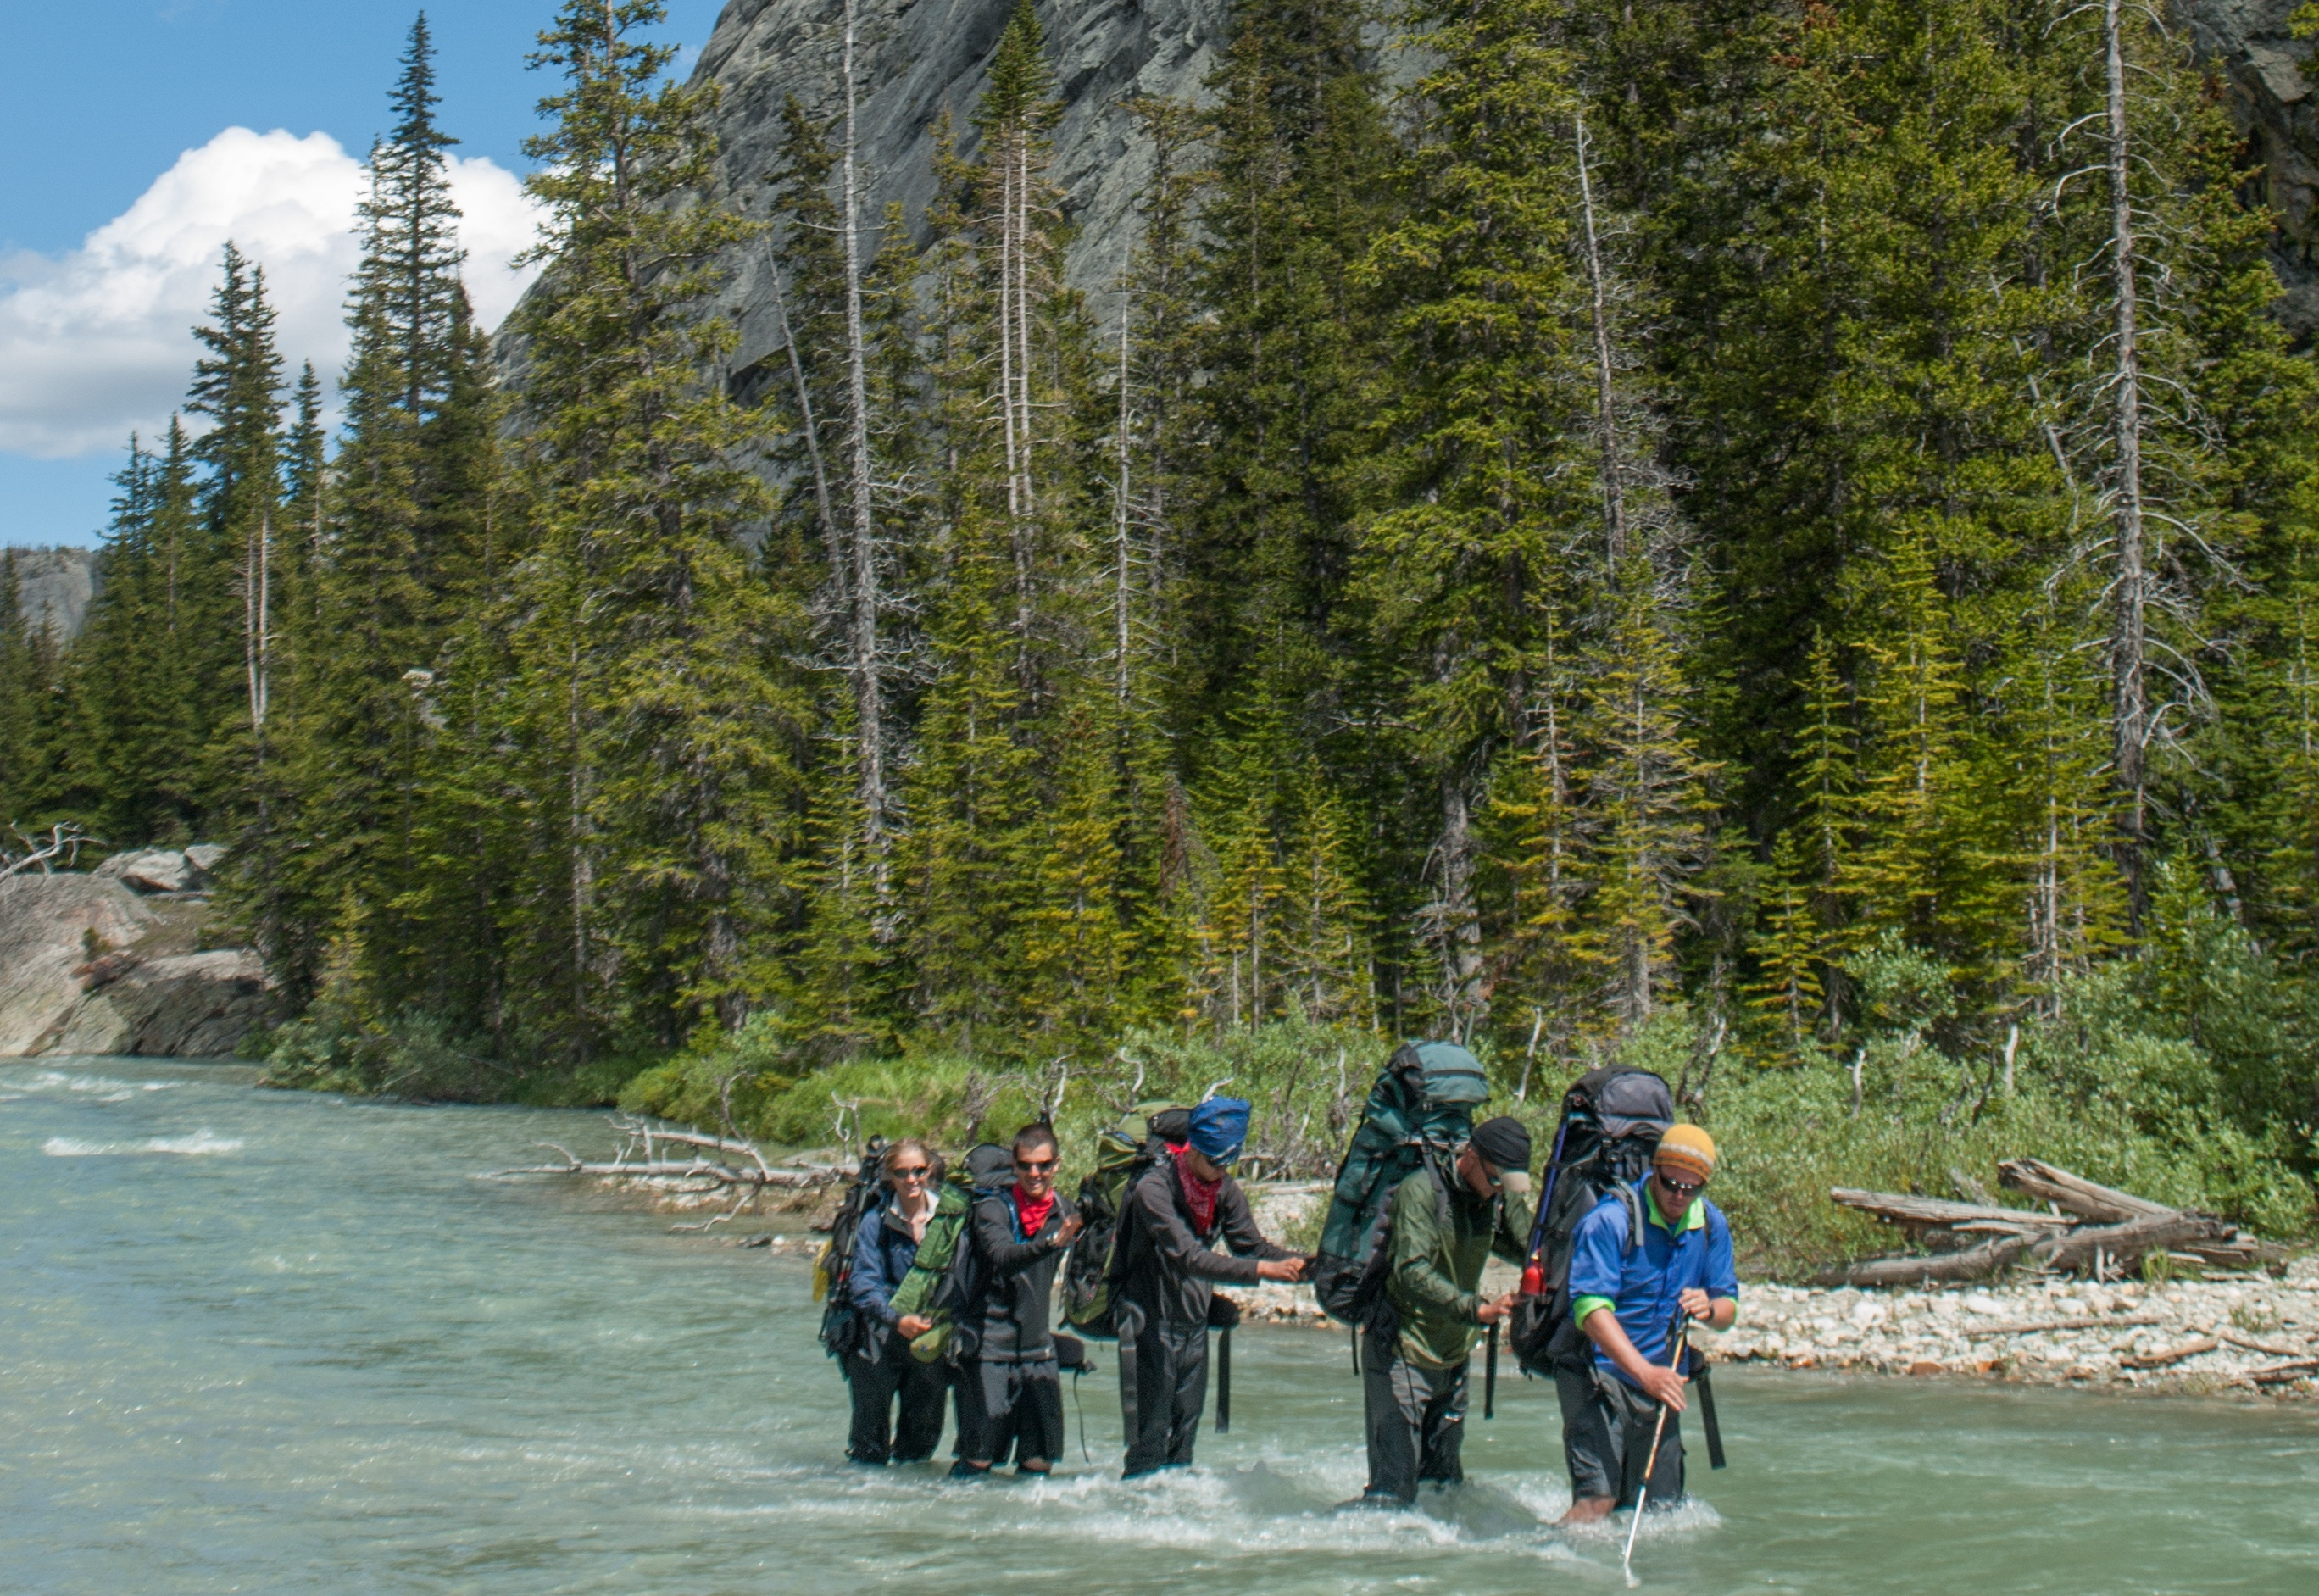 Five people wearing backpacks cross a river with pine trees on the riverbank